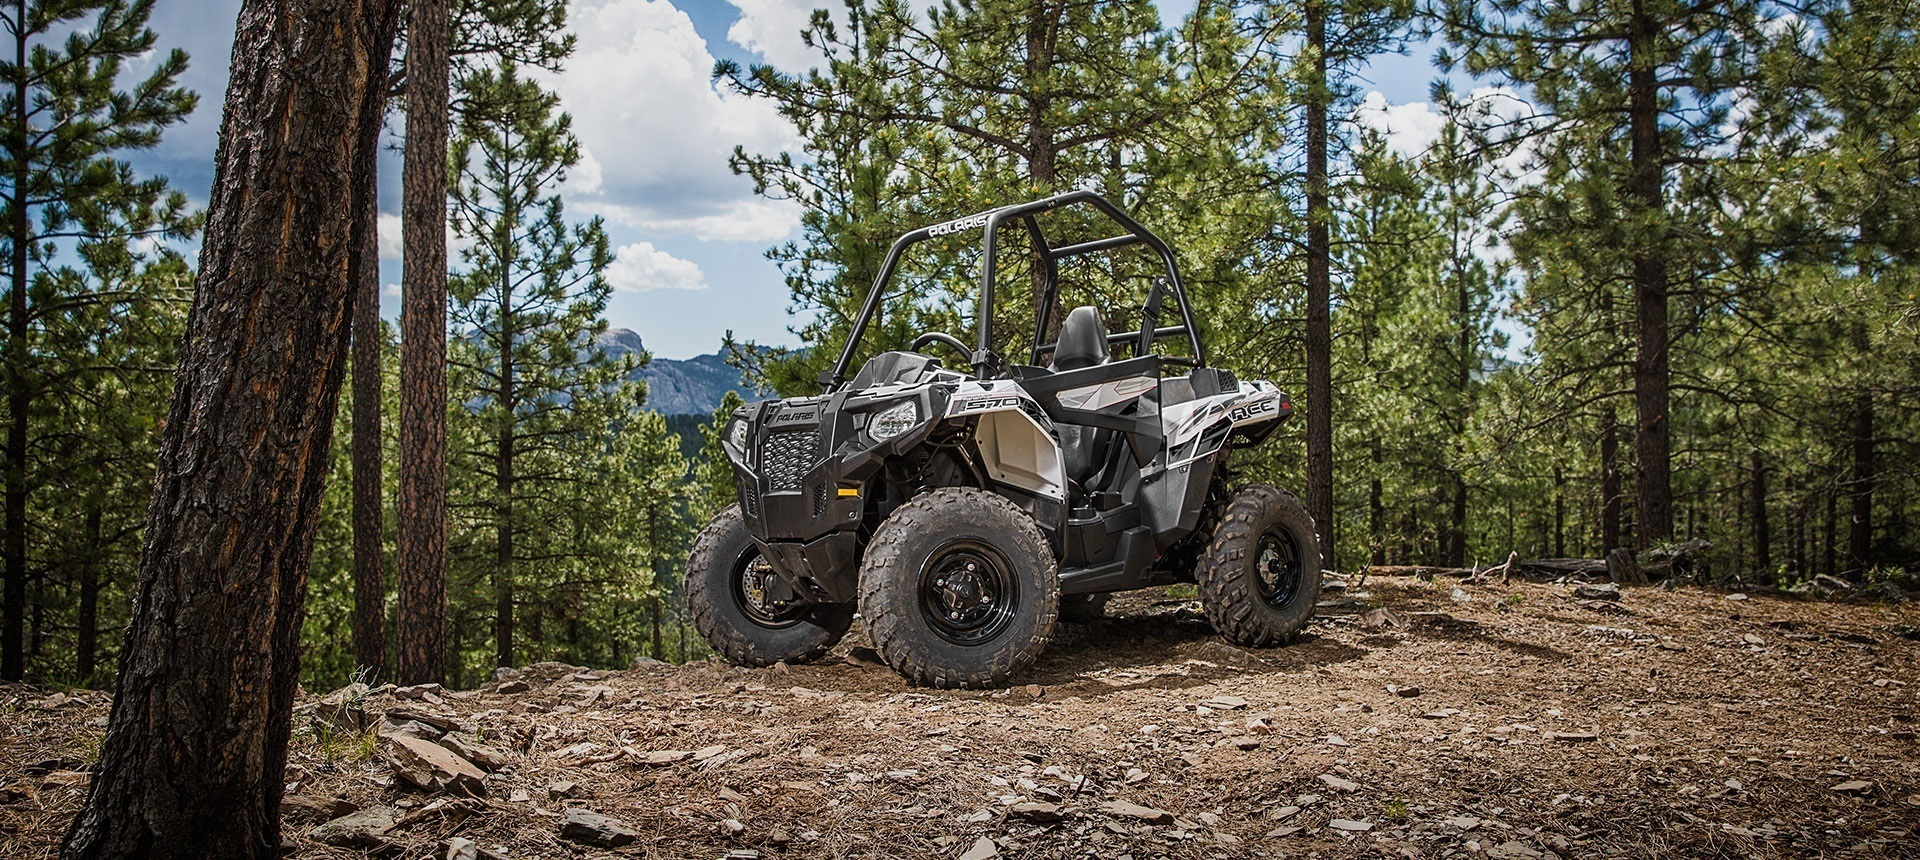 2019 Polaris Ace 570 EPS in Columbia, South Carolina